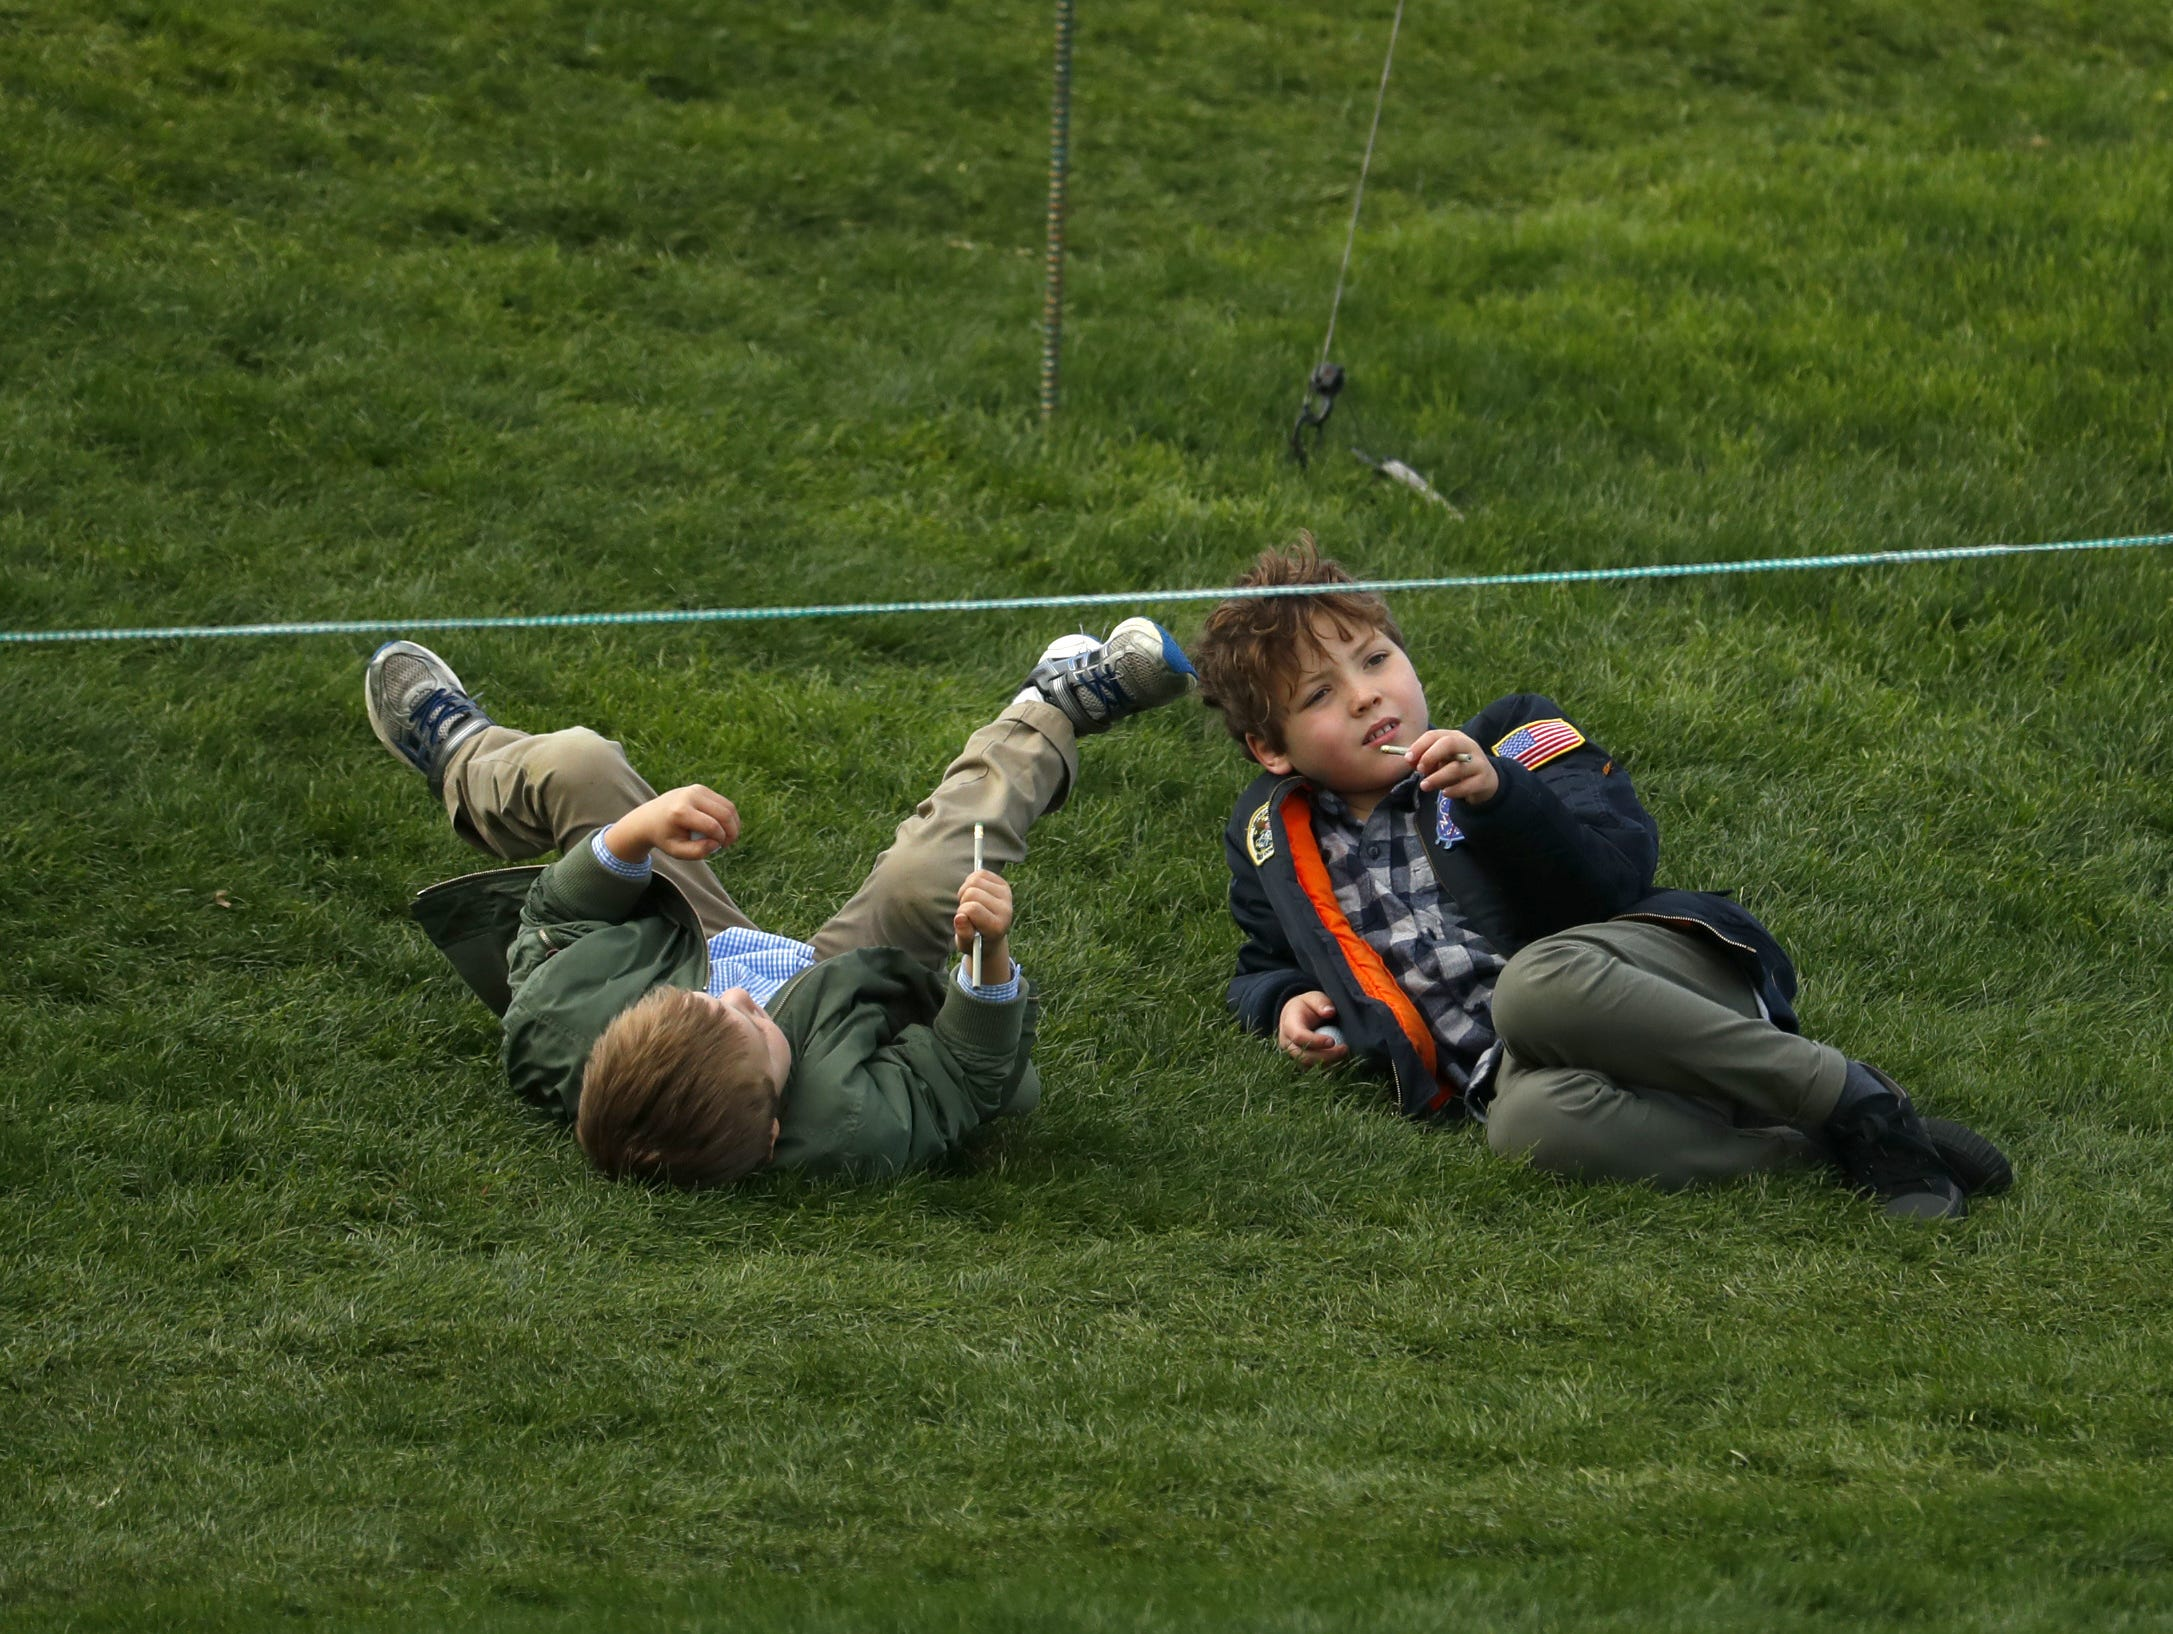 Children play near the 9th green during the third round of the Waste Management Phoenix Open at TPC Scottsdale in Scottsdale, Ariz. on February 2, 2019.